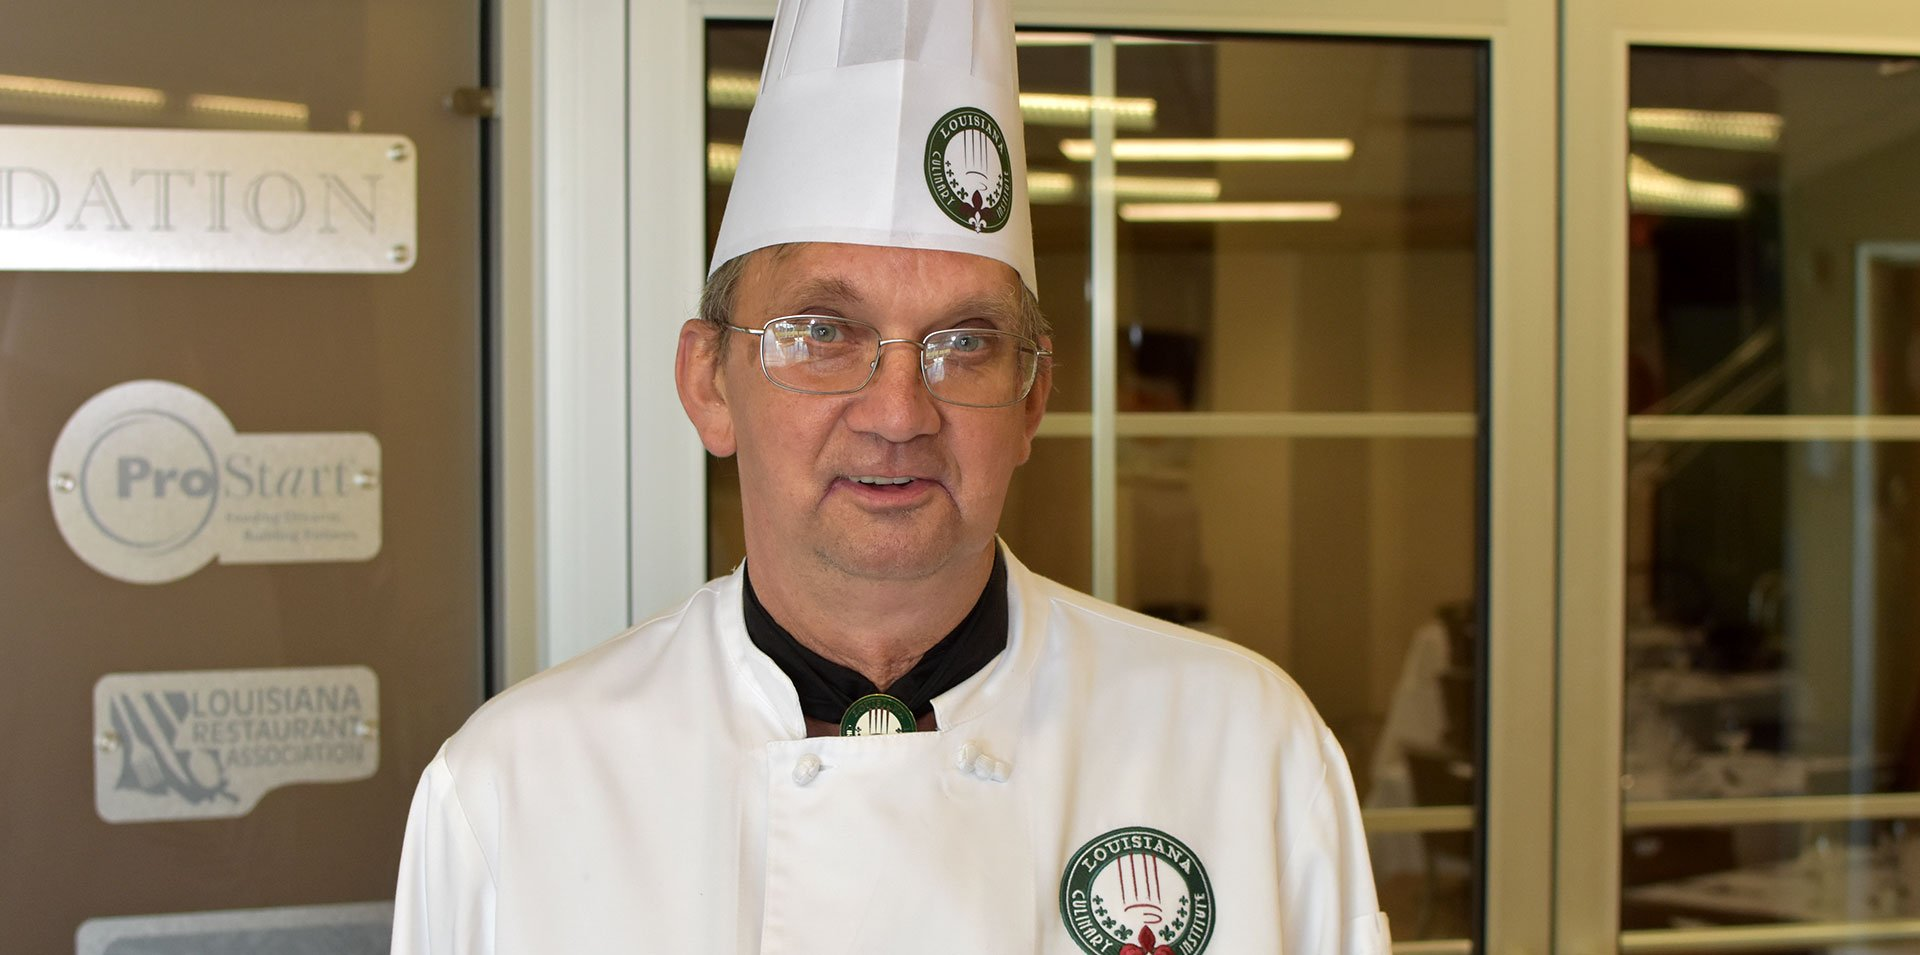 Chef George Michael Dunn Chef Instructor at LCI